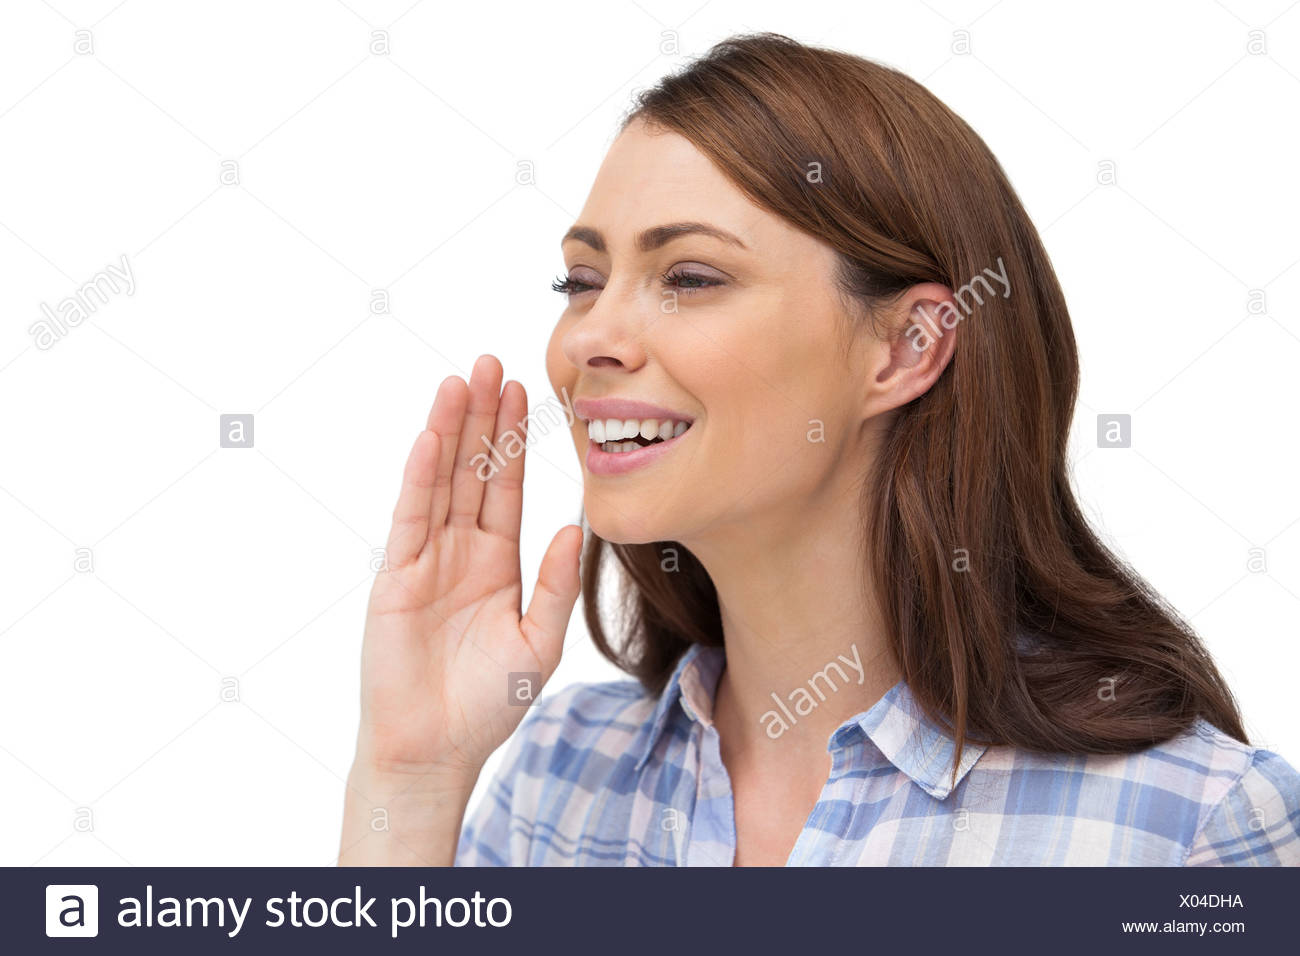 Smiling woman placing her hand to say something - Stock Image